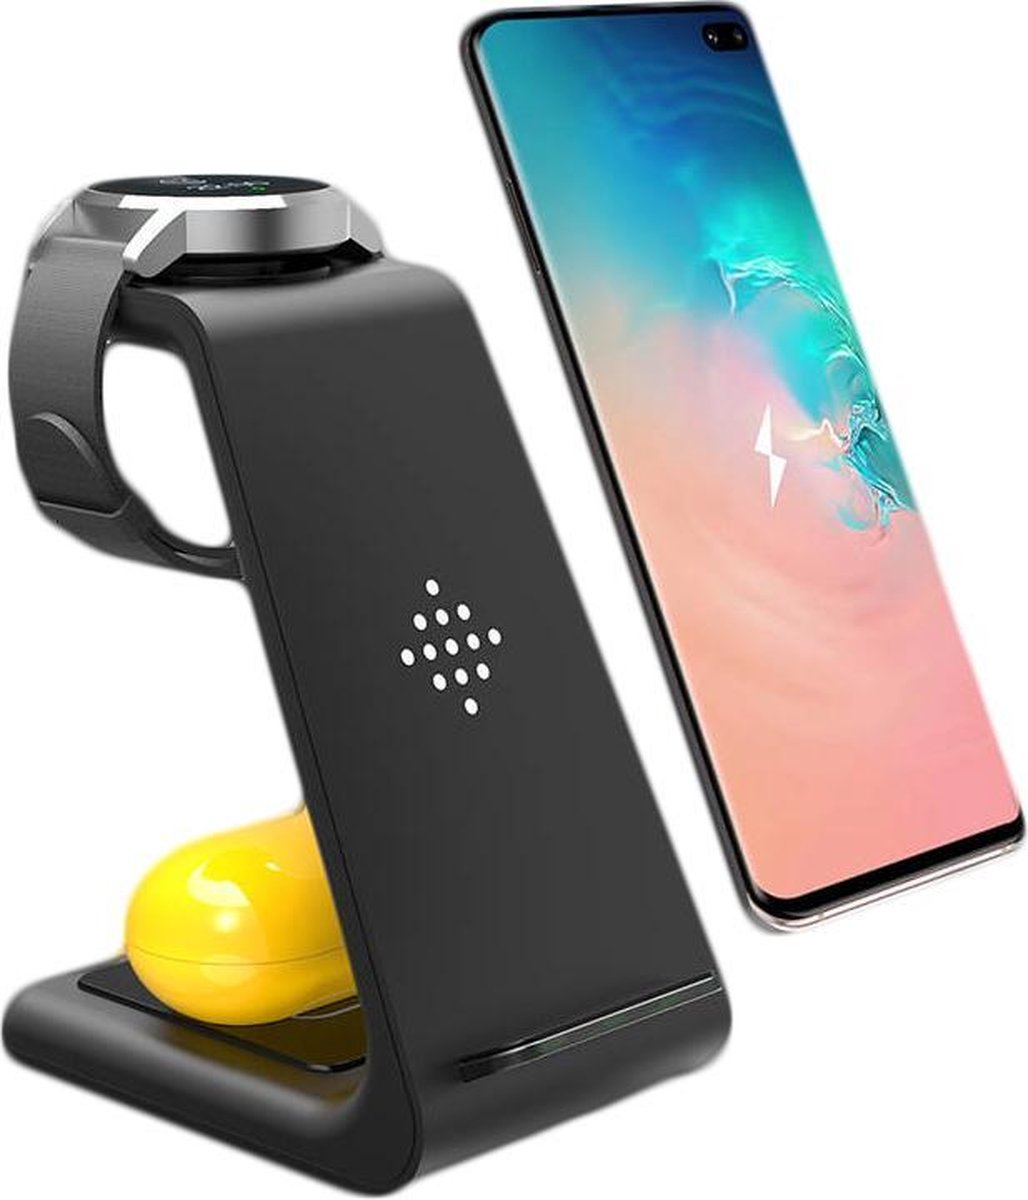 MW® 3-in-1 Draadloze Samsung Oplader – Android telefoons, Samsung Watch en Galaxy Buds – Qi Lader